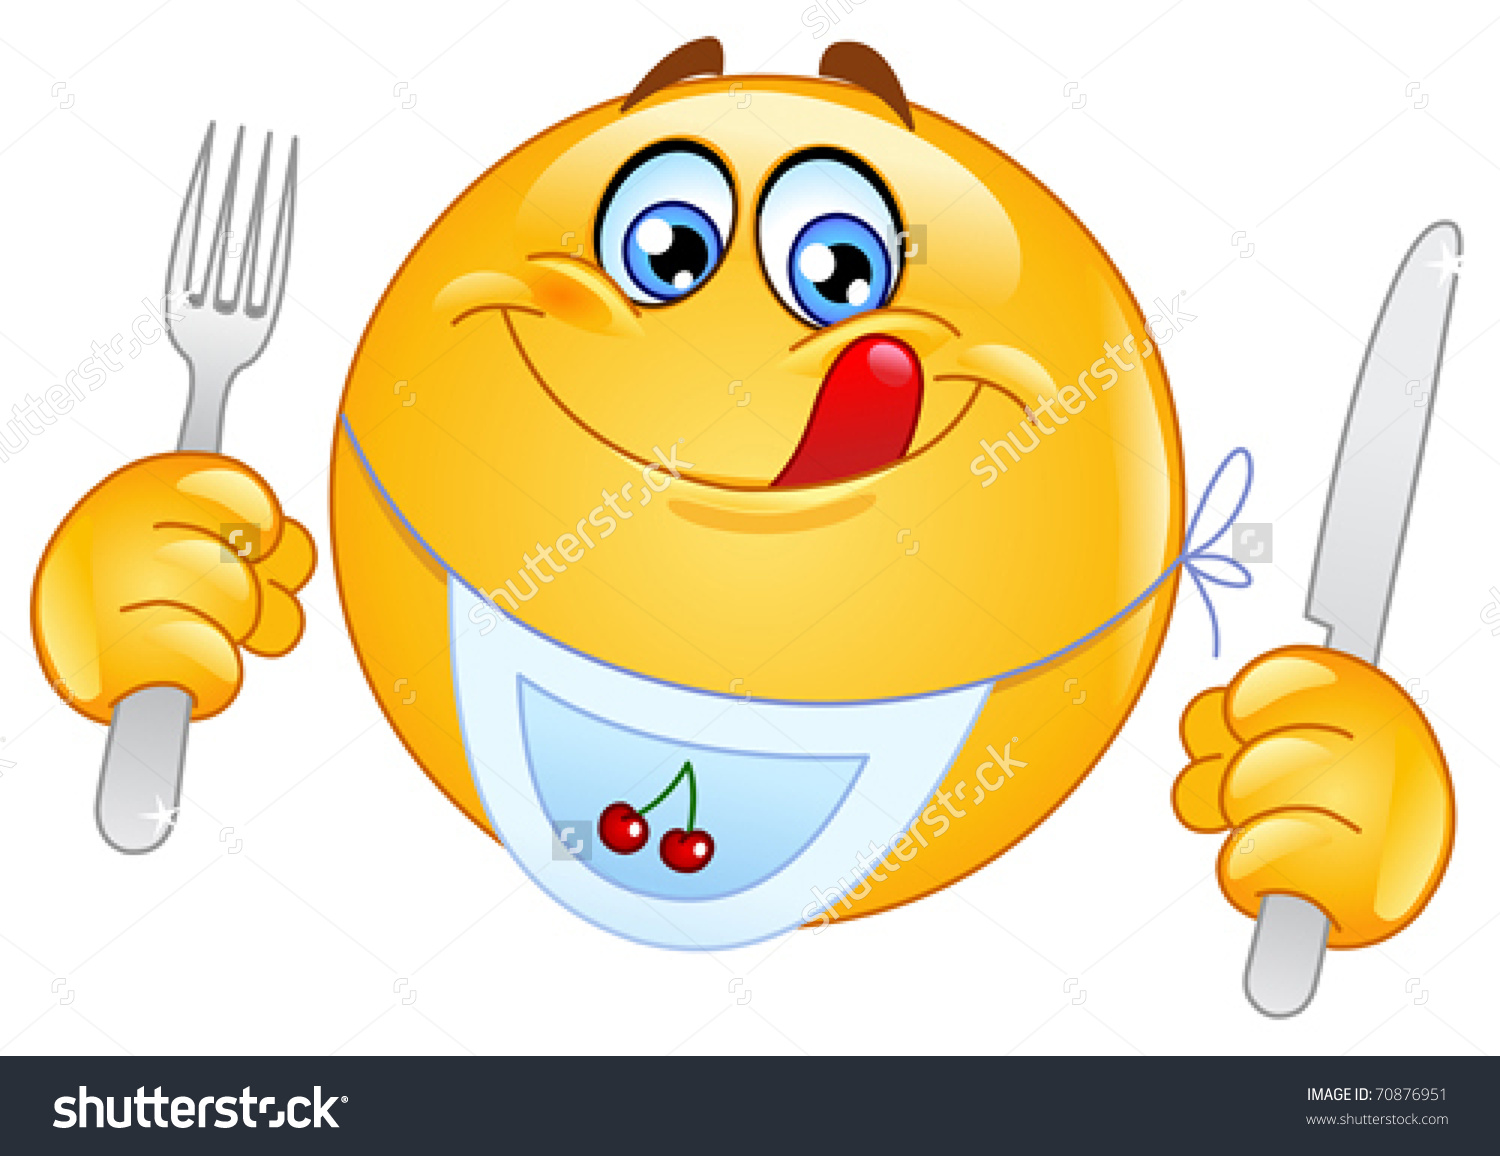 Hungry Emoticon Stock Vector 70876951.